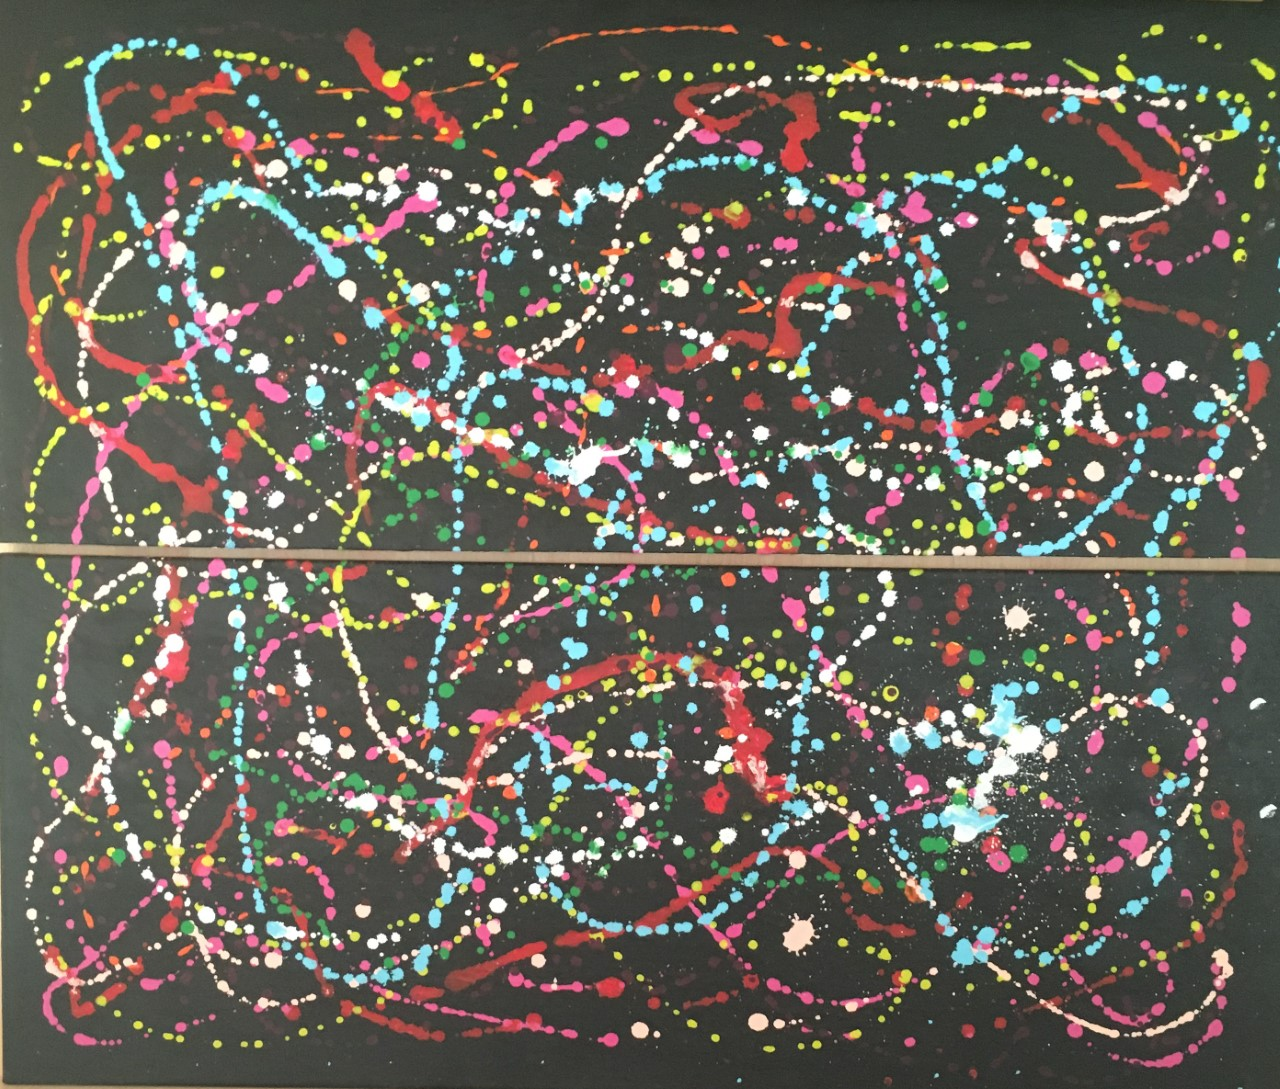 Into the unknown artwork by Antony Poulton - art listed for sale on Artplode